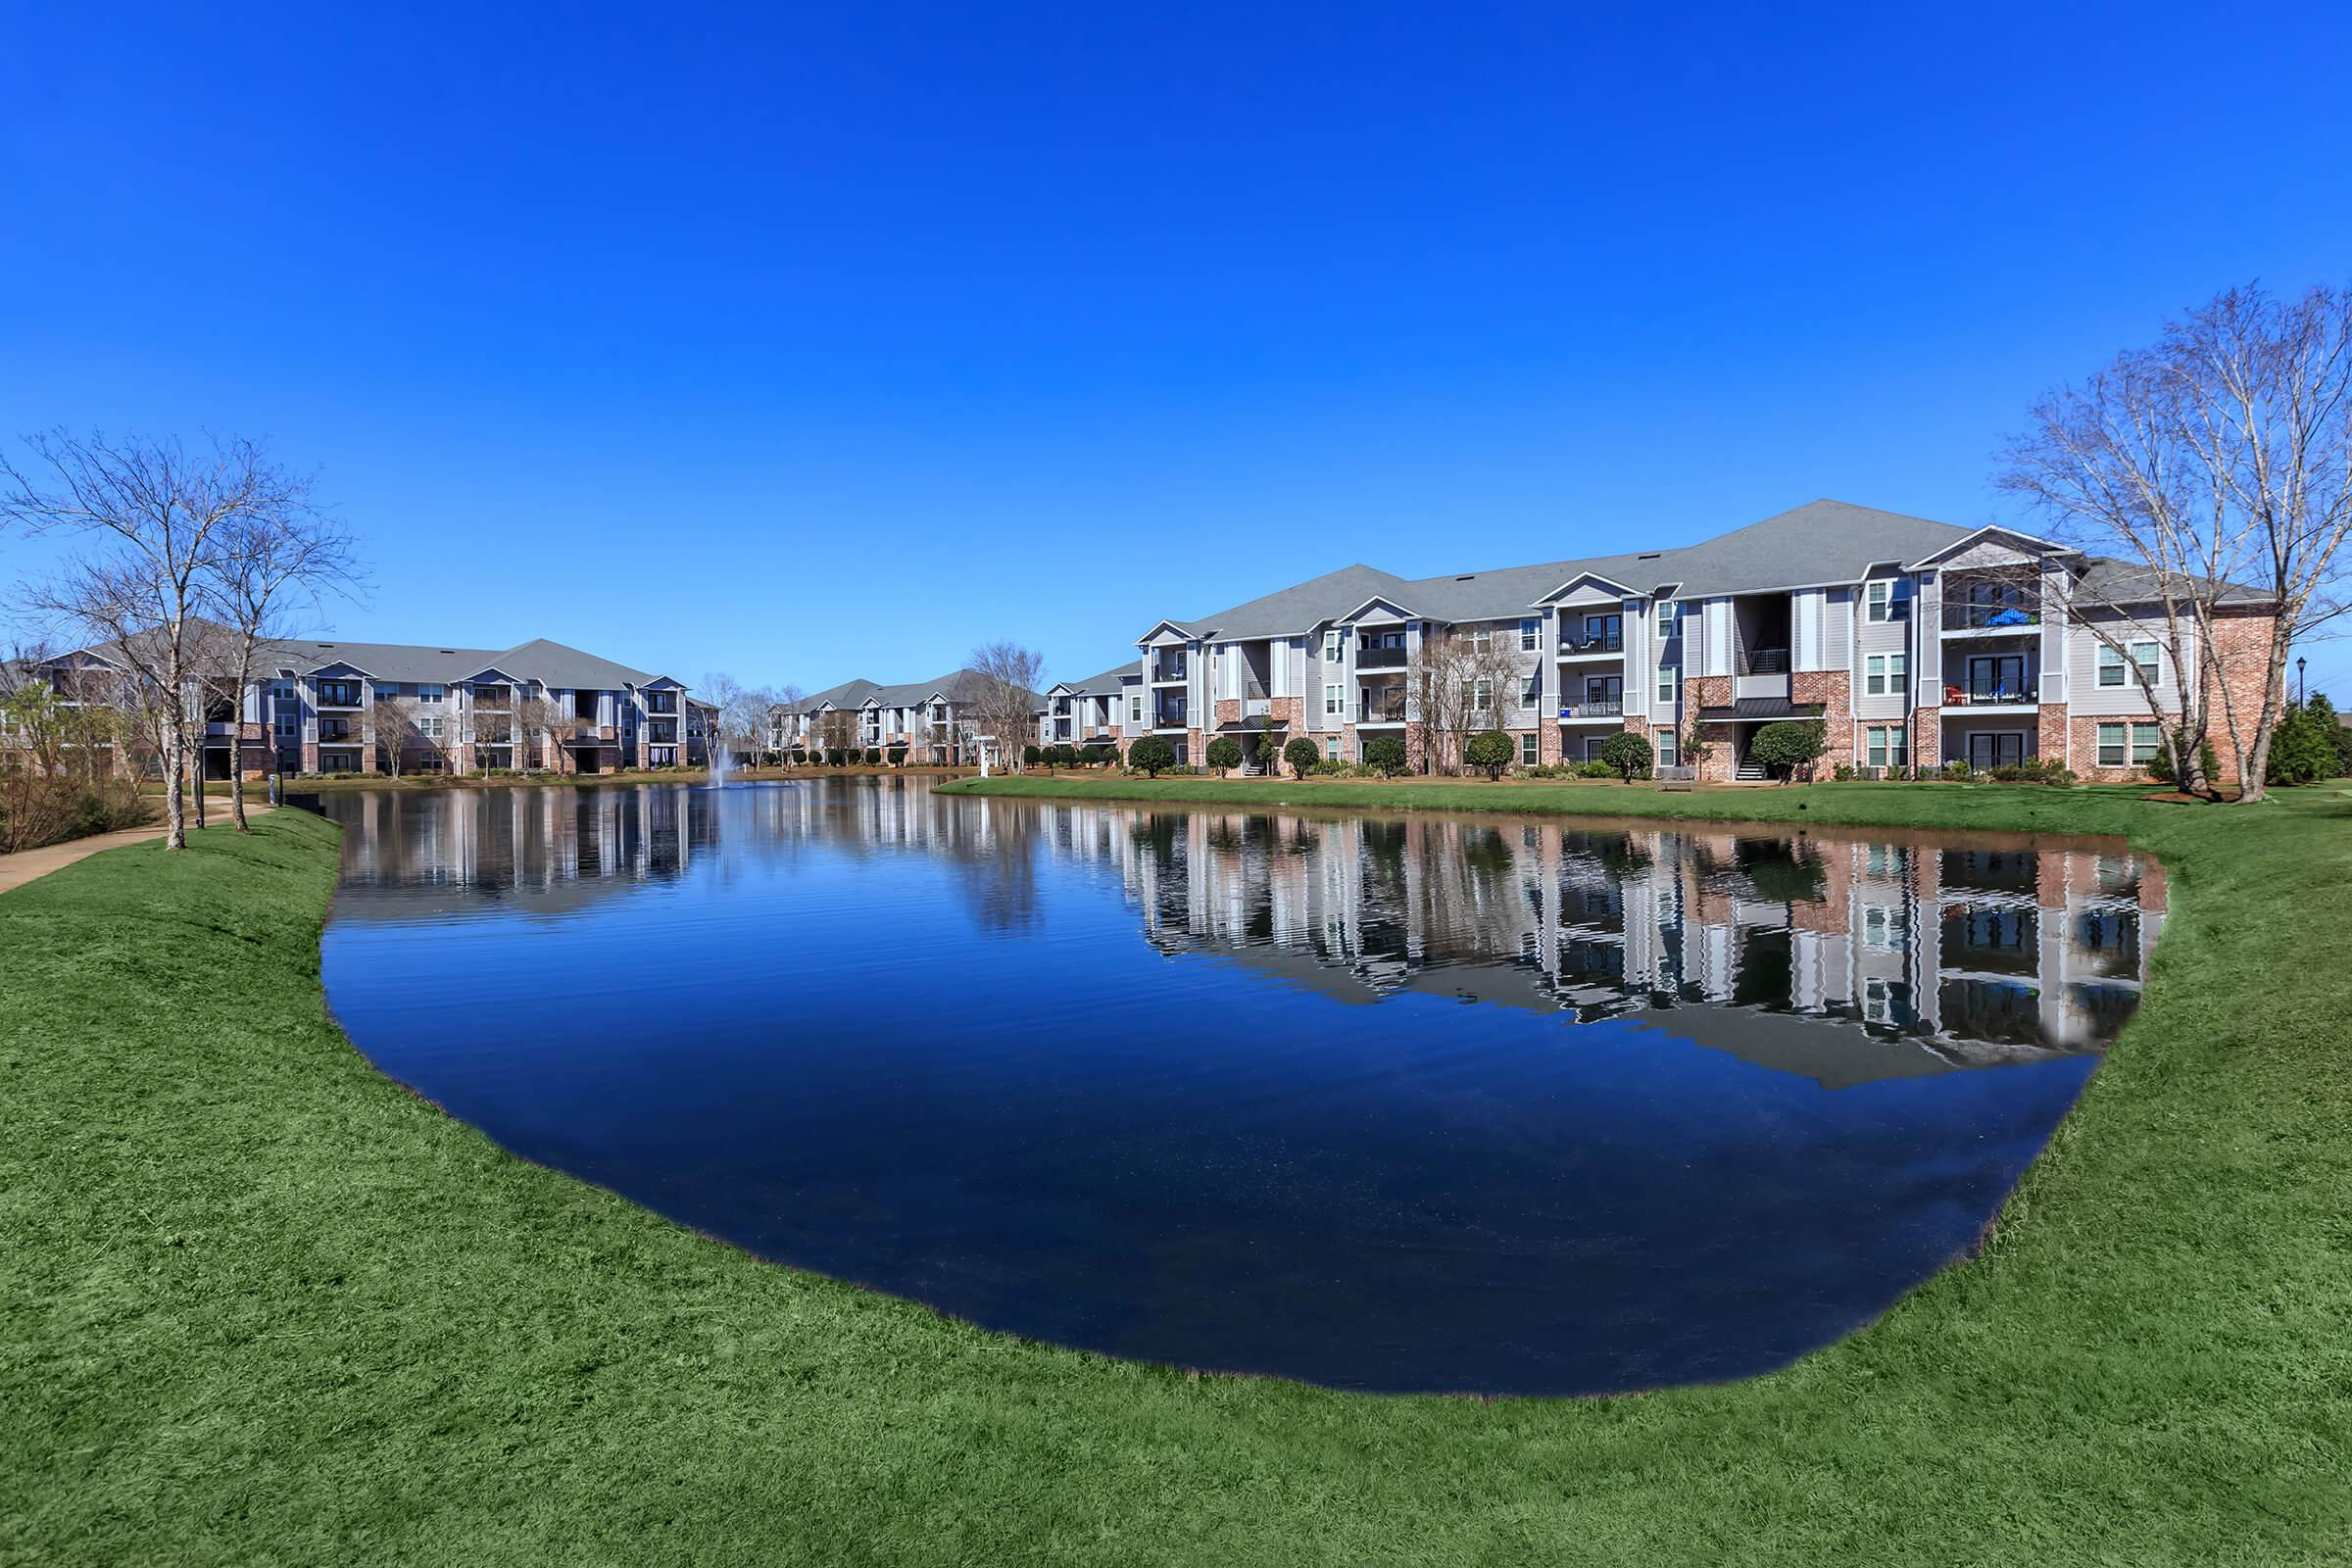 a large lawn in front of a body of water